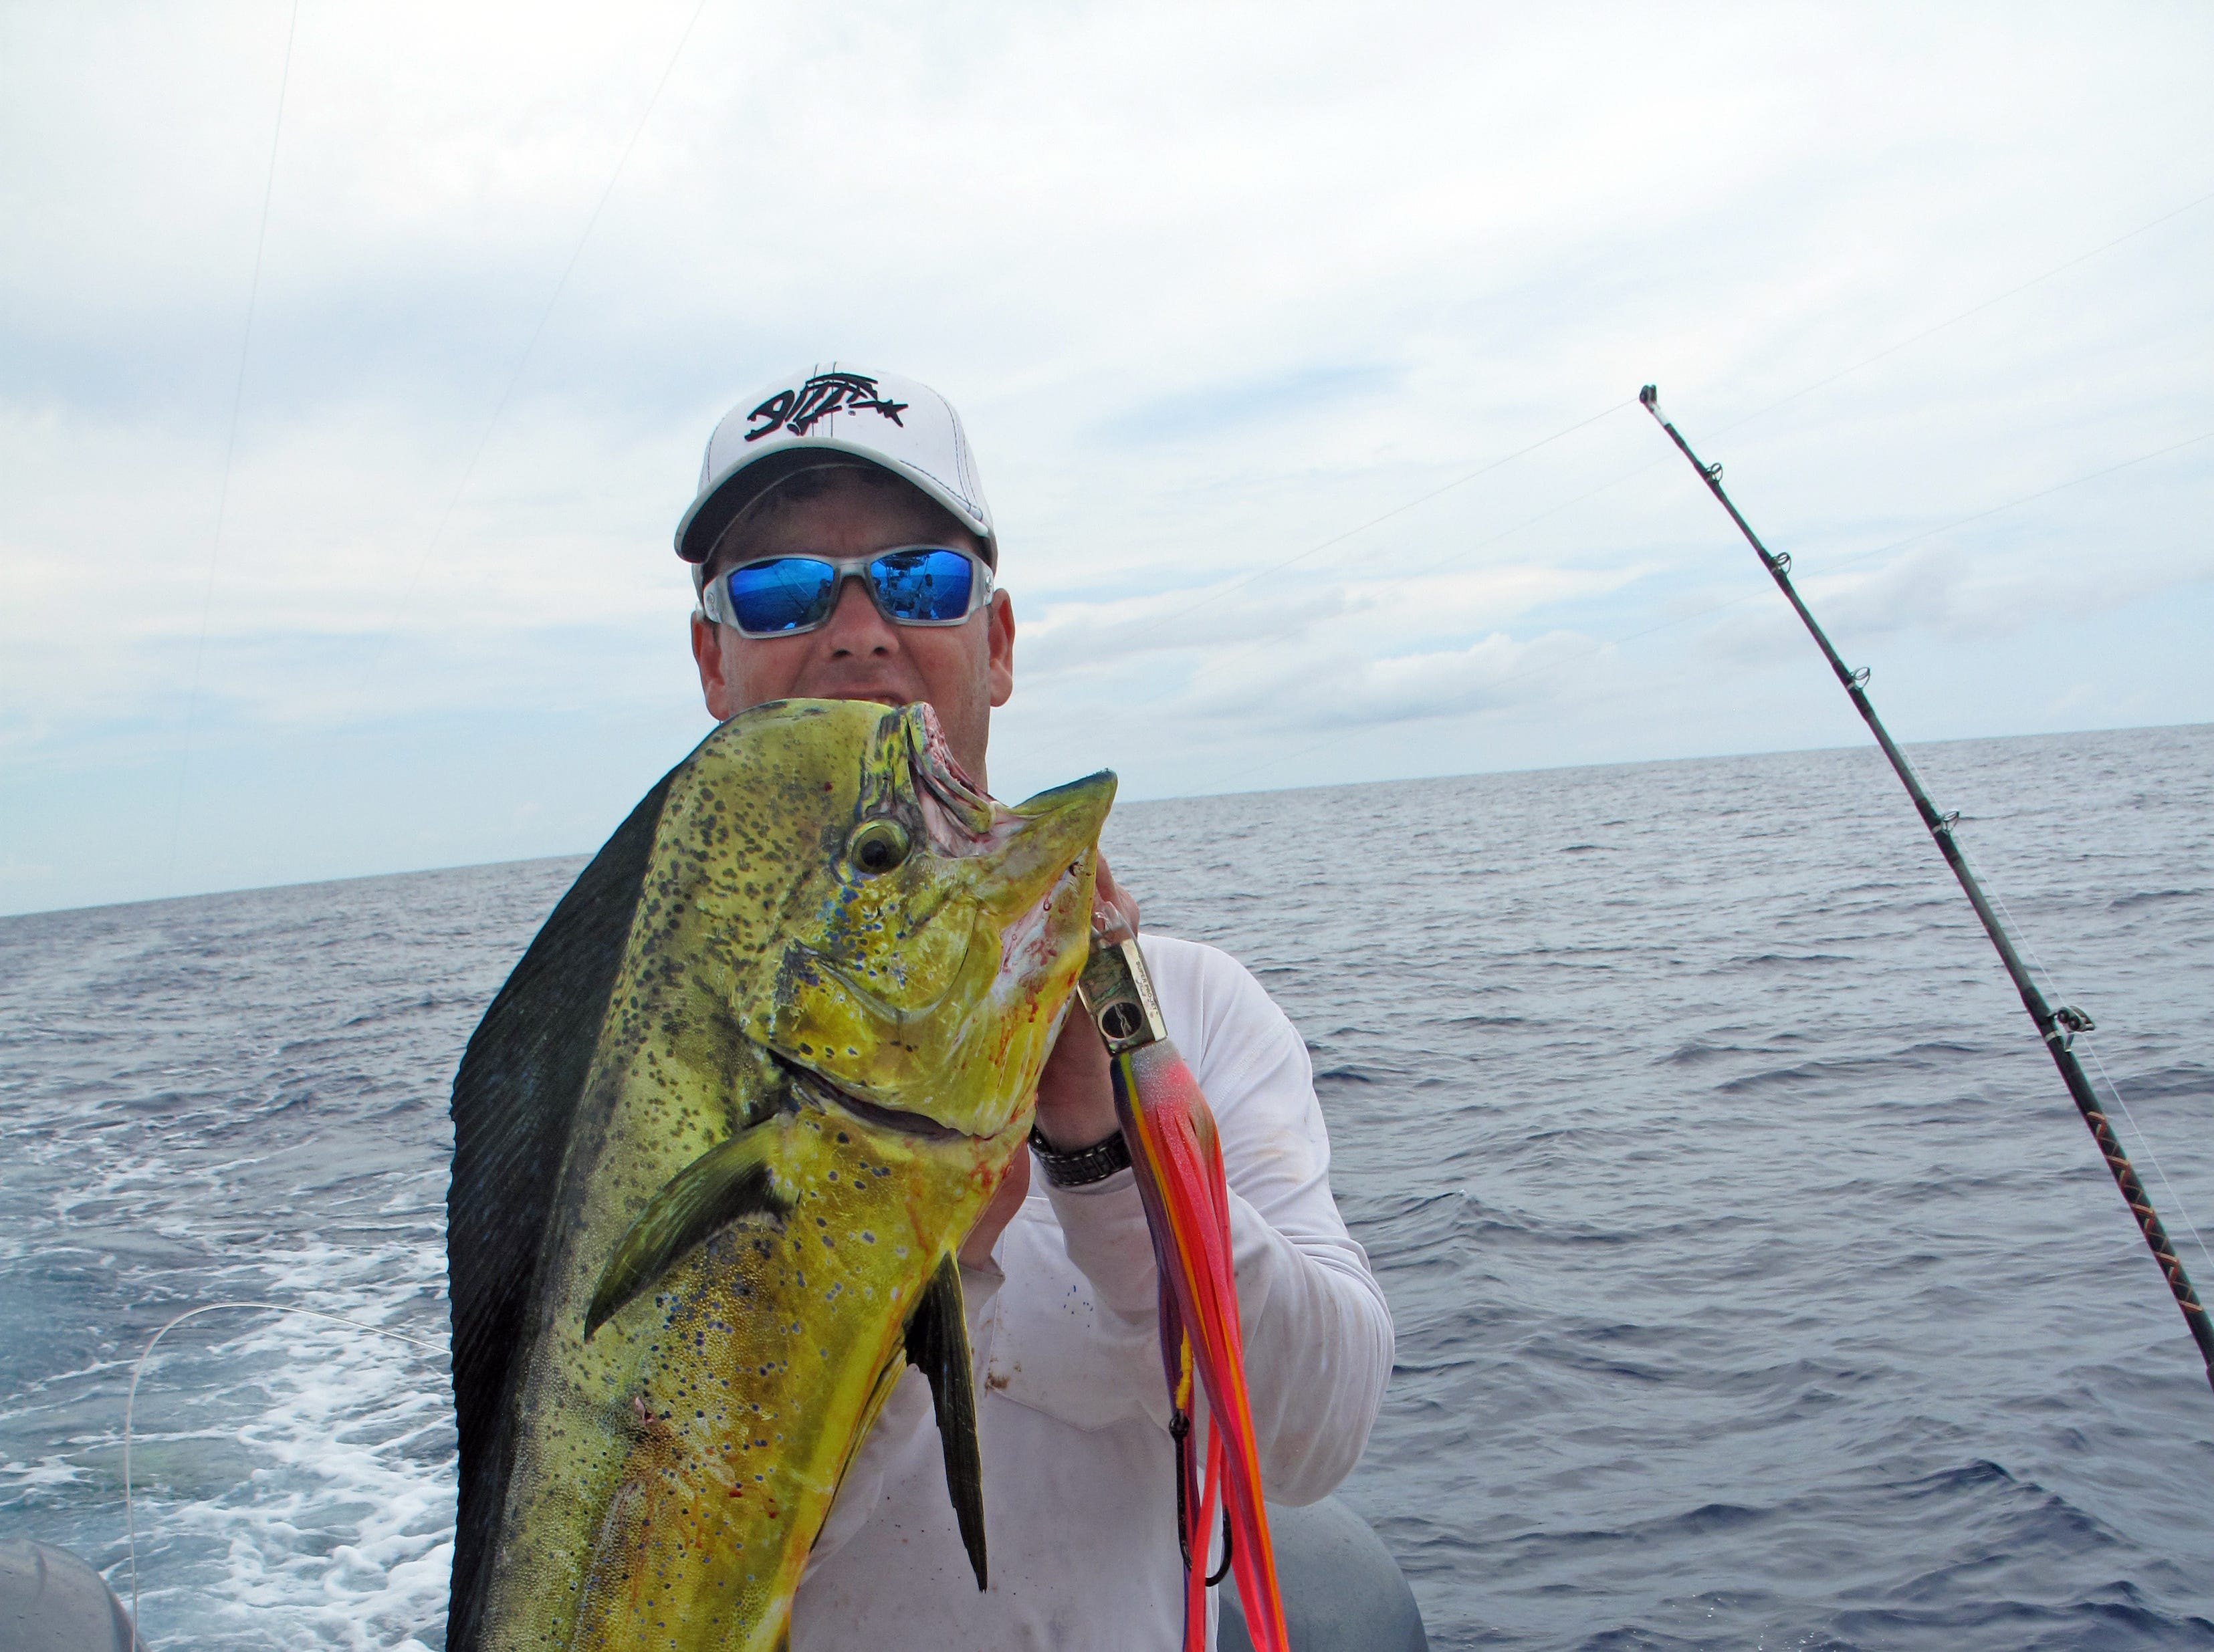 Timmy Hervey caught this dorado while fishing about 80 miles offshore.